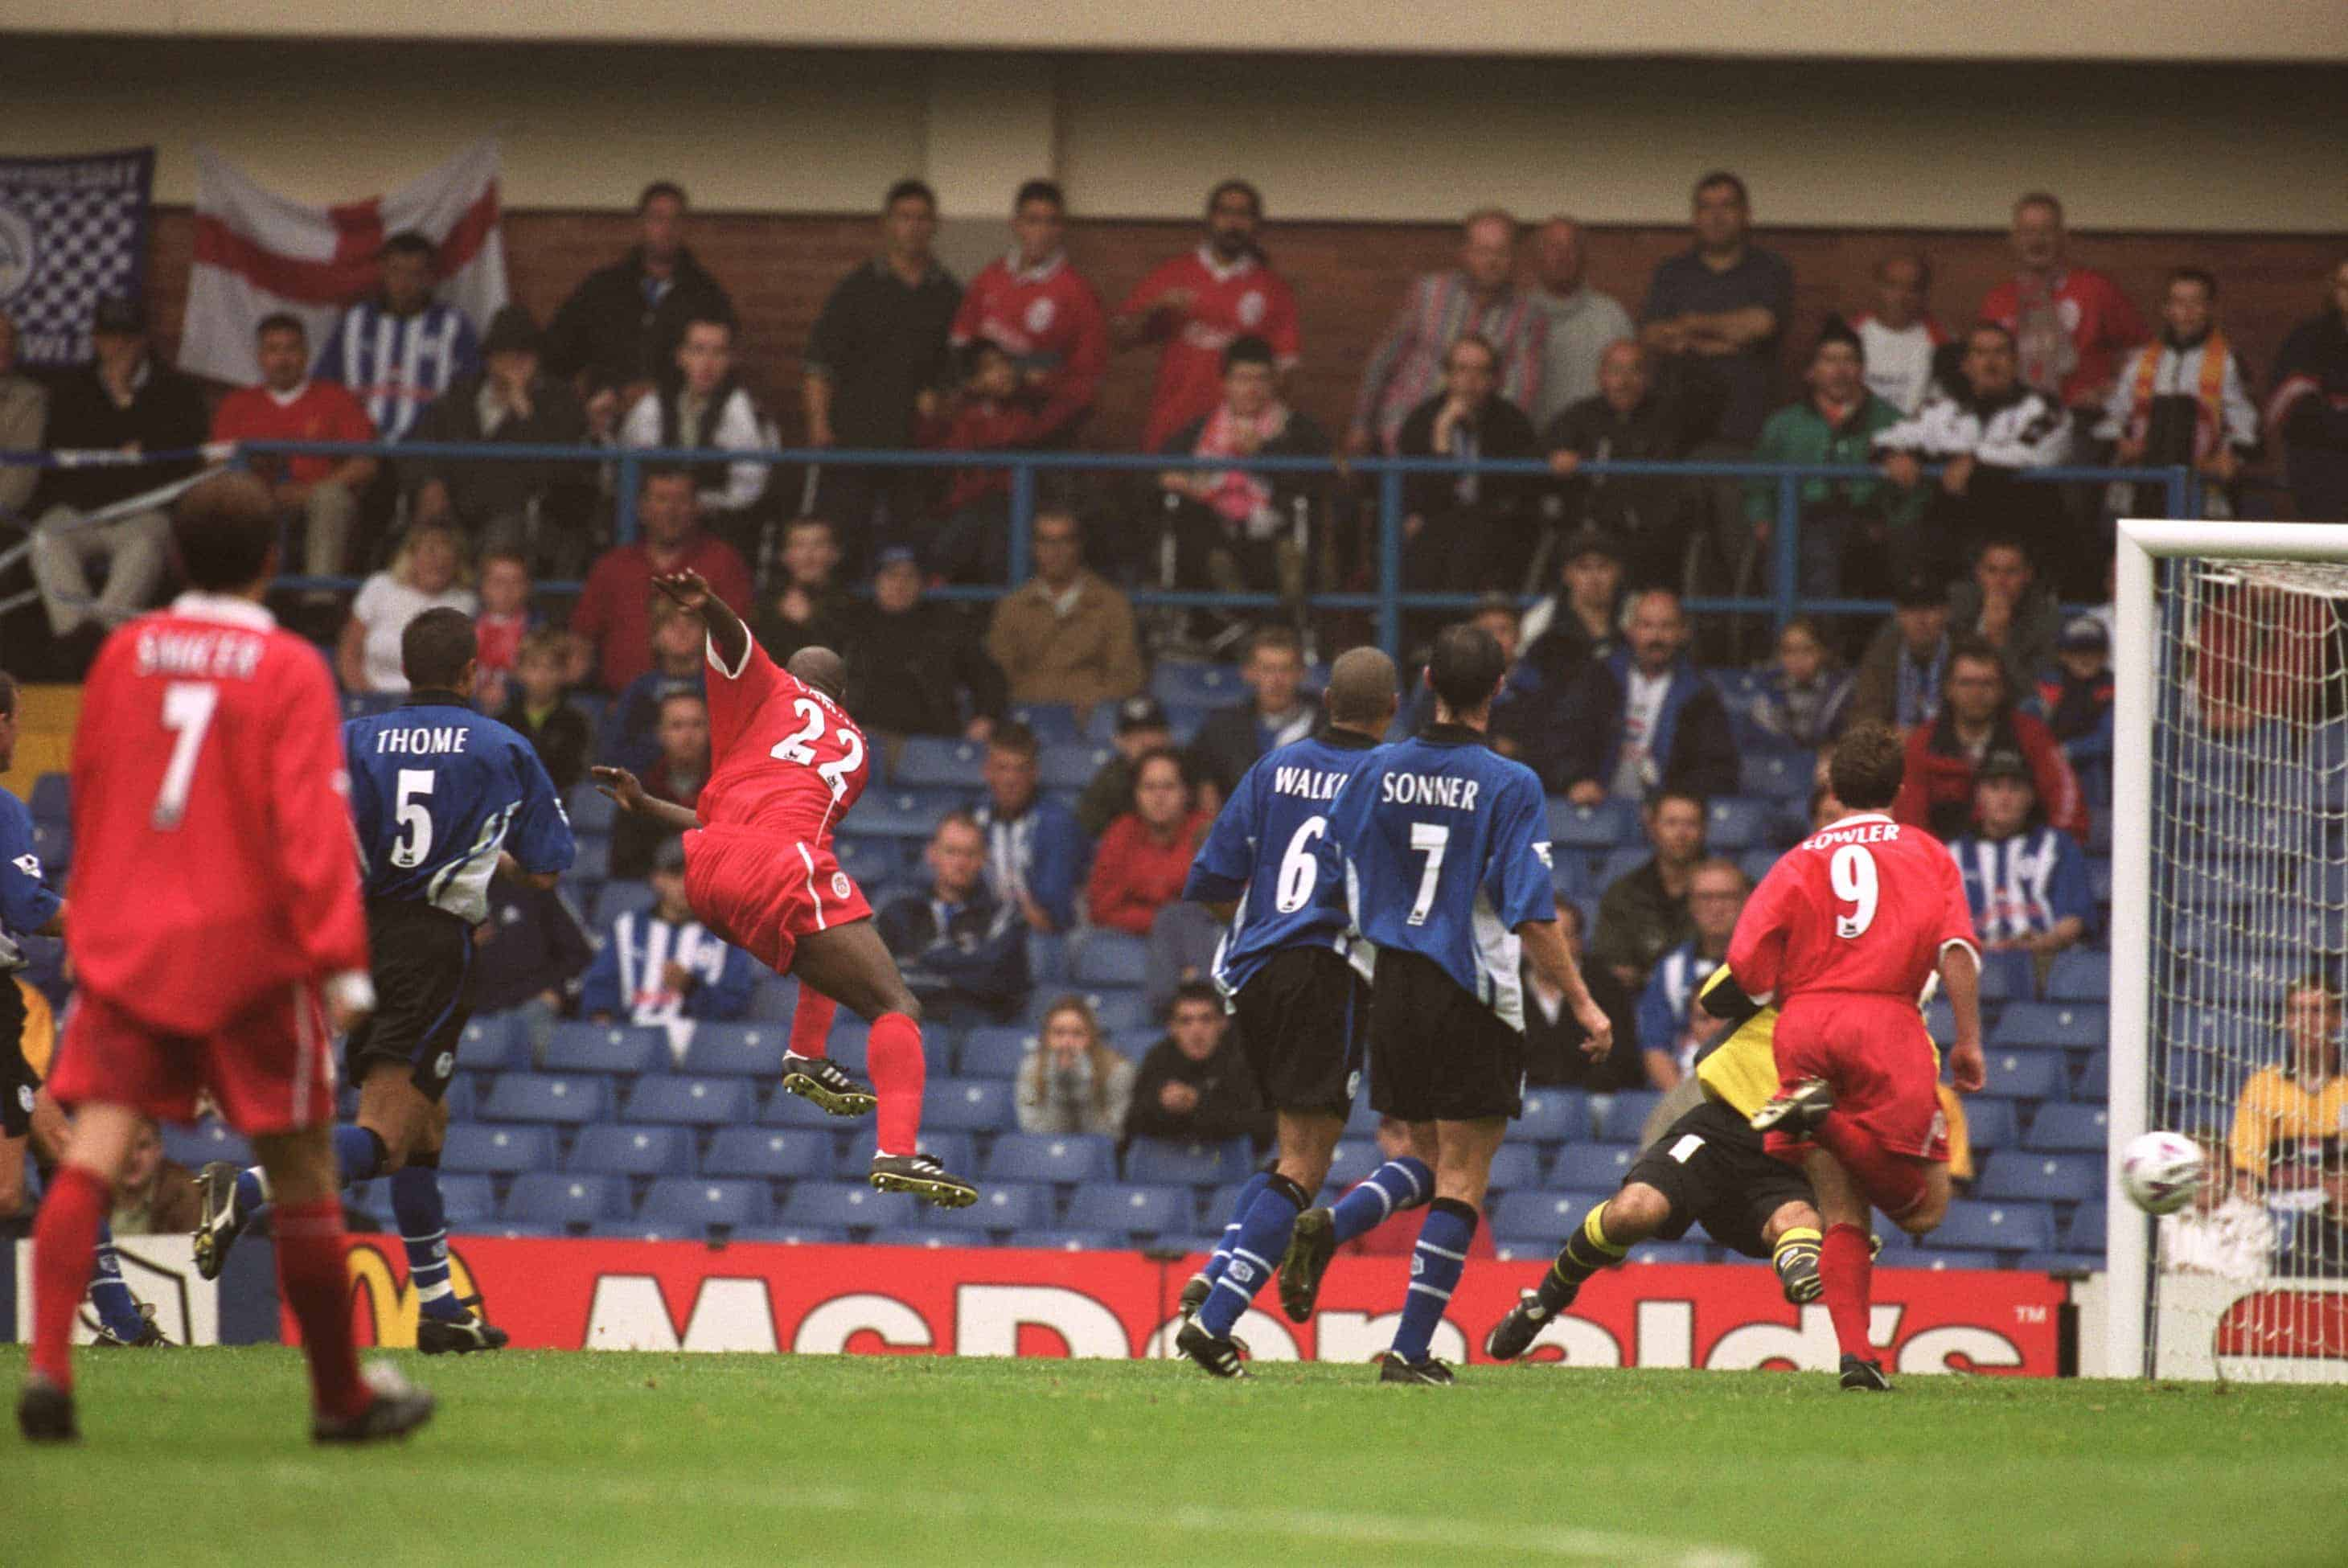 Picture by: Neal Simpson / EMPICS Sport Liverpool's Titi Camara fires the ball past 'Keeper Pavel Srnicek to score their second goal